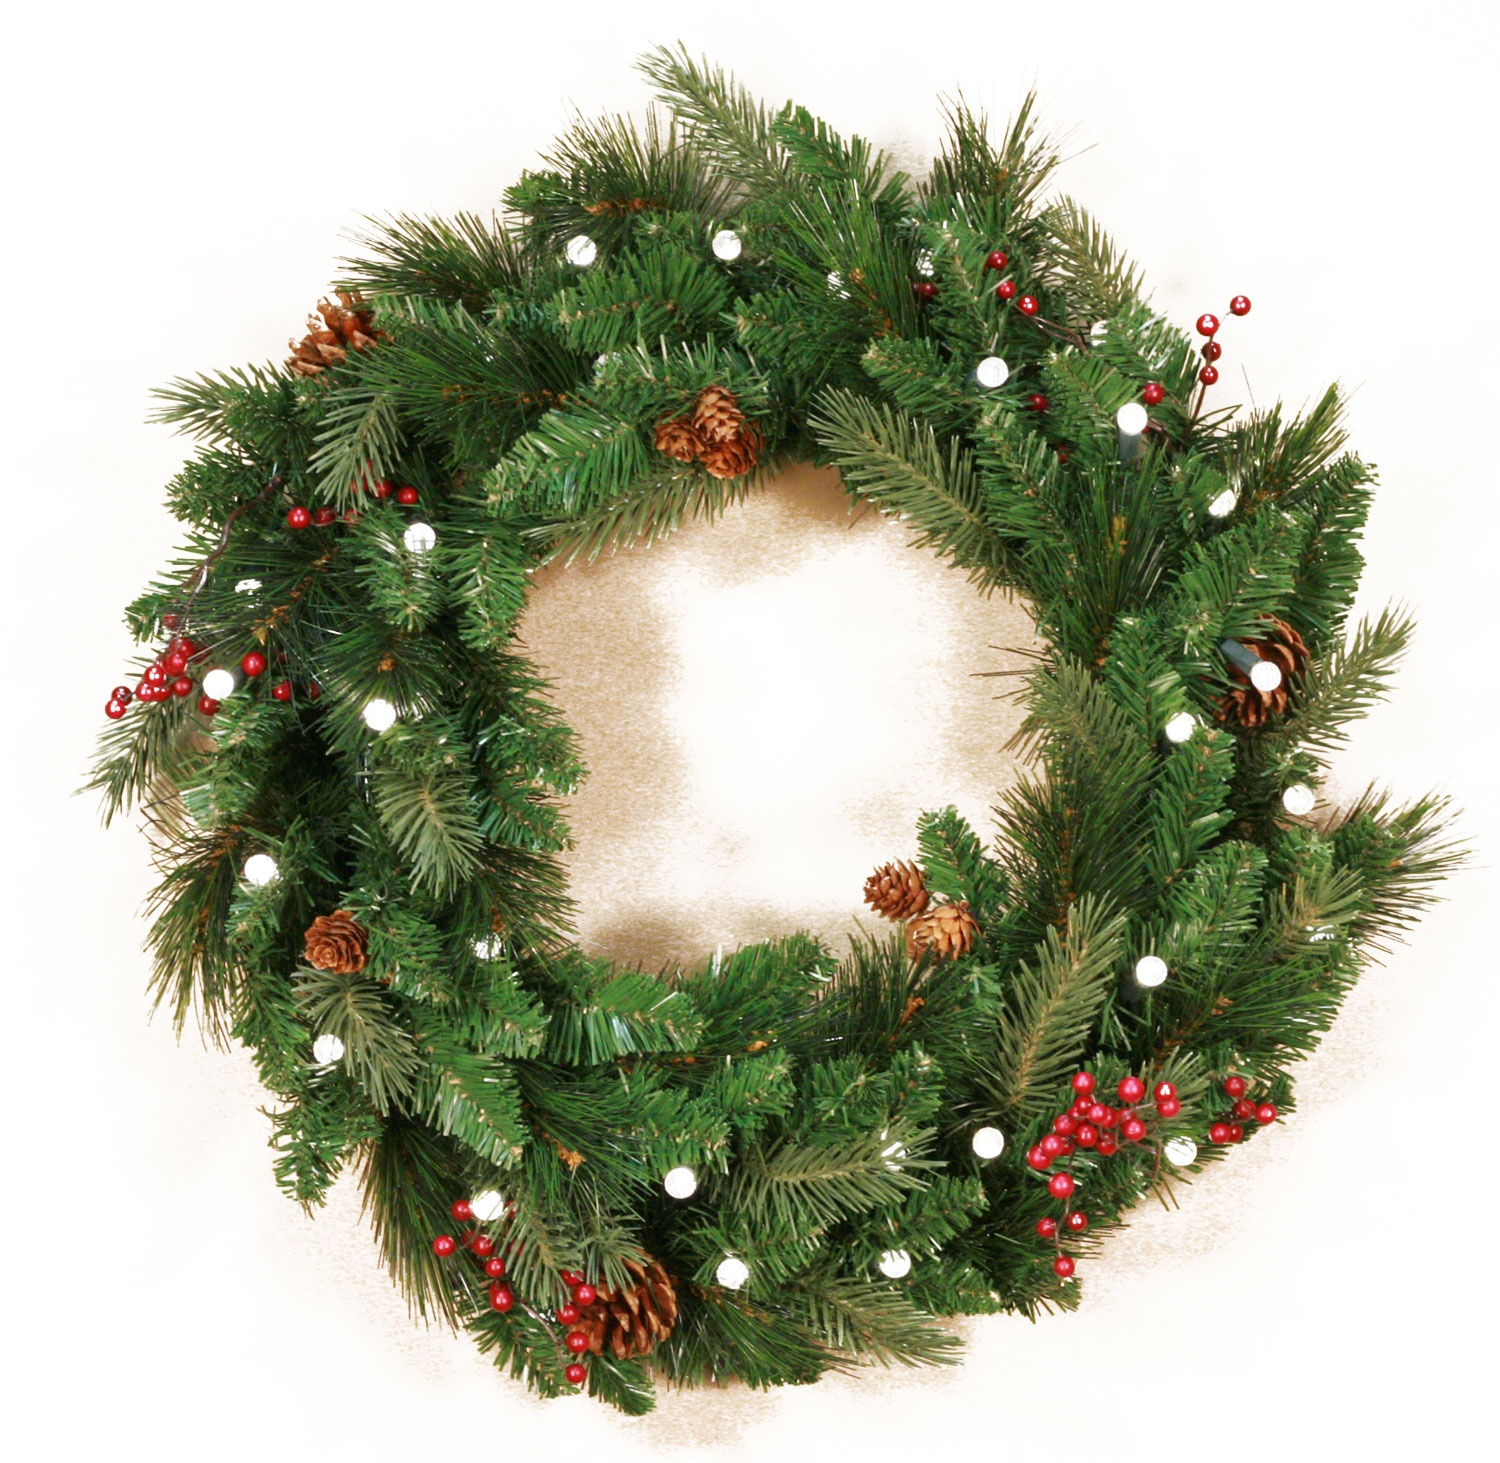 Mixed White Spruce Battery Operated LED Wreath, Warm White Lights